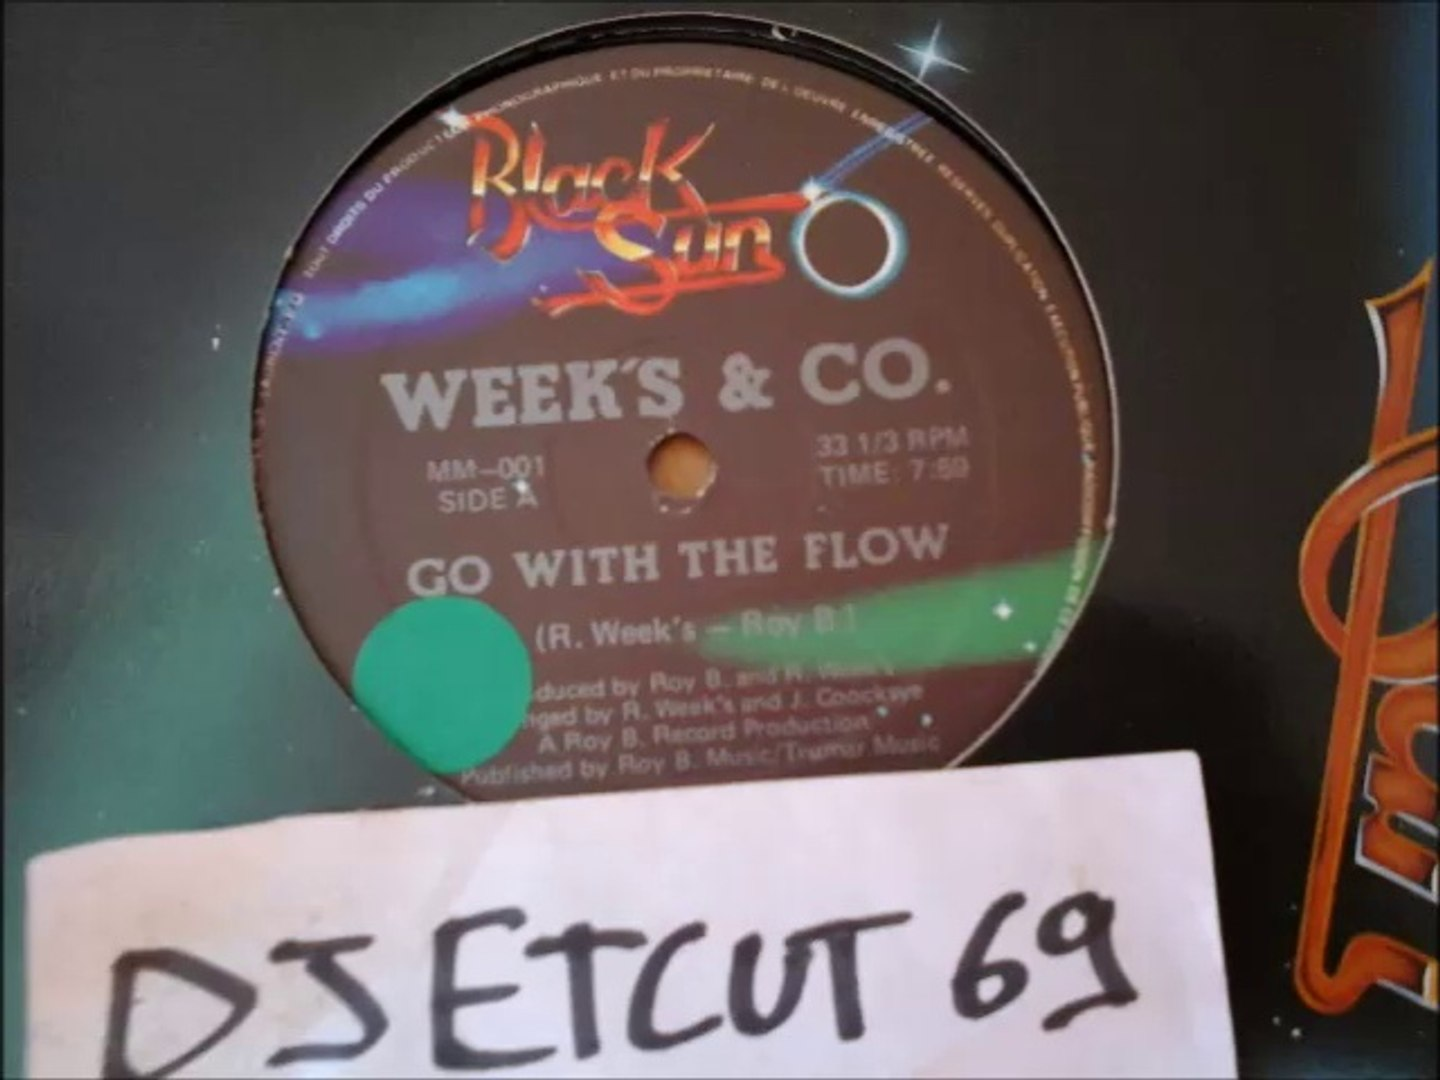 WEEK'S & CO-GO WITH THE FLOW(RIP ETCUT)BLACK SUN REC  82